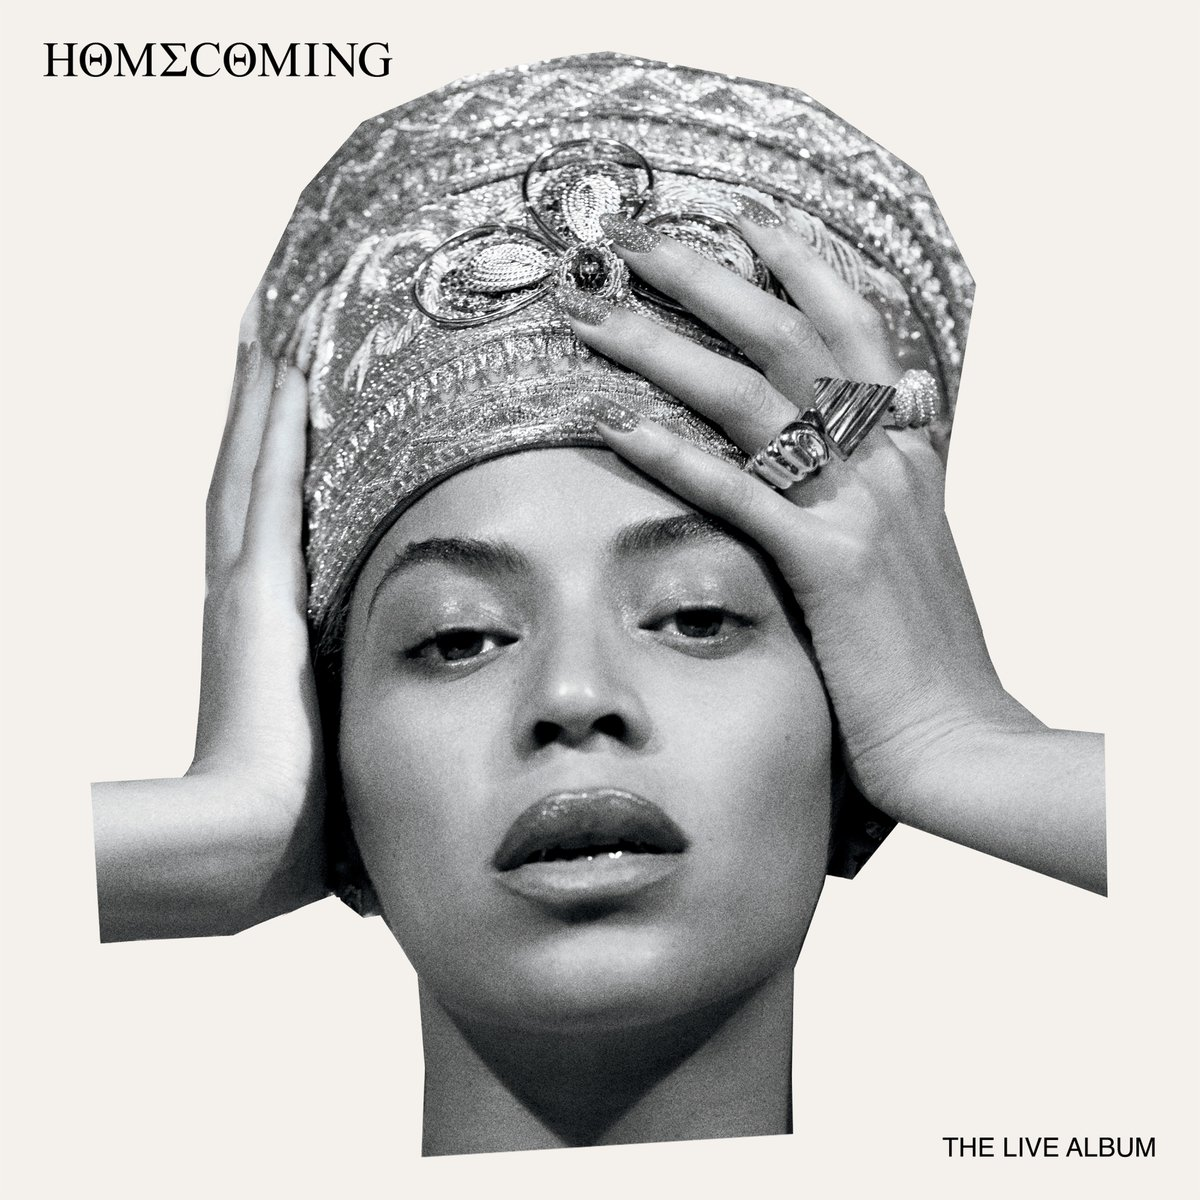 Billboard predicts #BeyoncéHomecoming  will be nominated for &quot;Best Music Film&quot; and &quot;Album of the Year&quot; at the 2020 #GRAMMYs.  &quot;Homecoming: The Live Album is vying to become the first live album to be nominated for album of the year since 1994.&quot;  http:// bit.ly/2VRE387  &nbsp;  <br>http://pic.twitter.com/wuMpVJTAcO